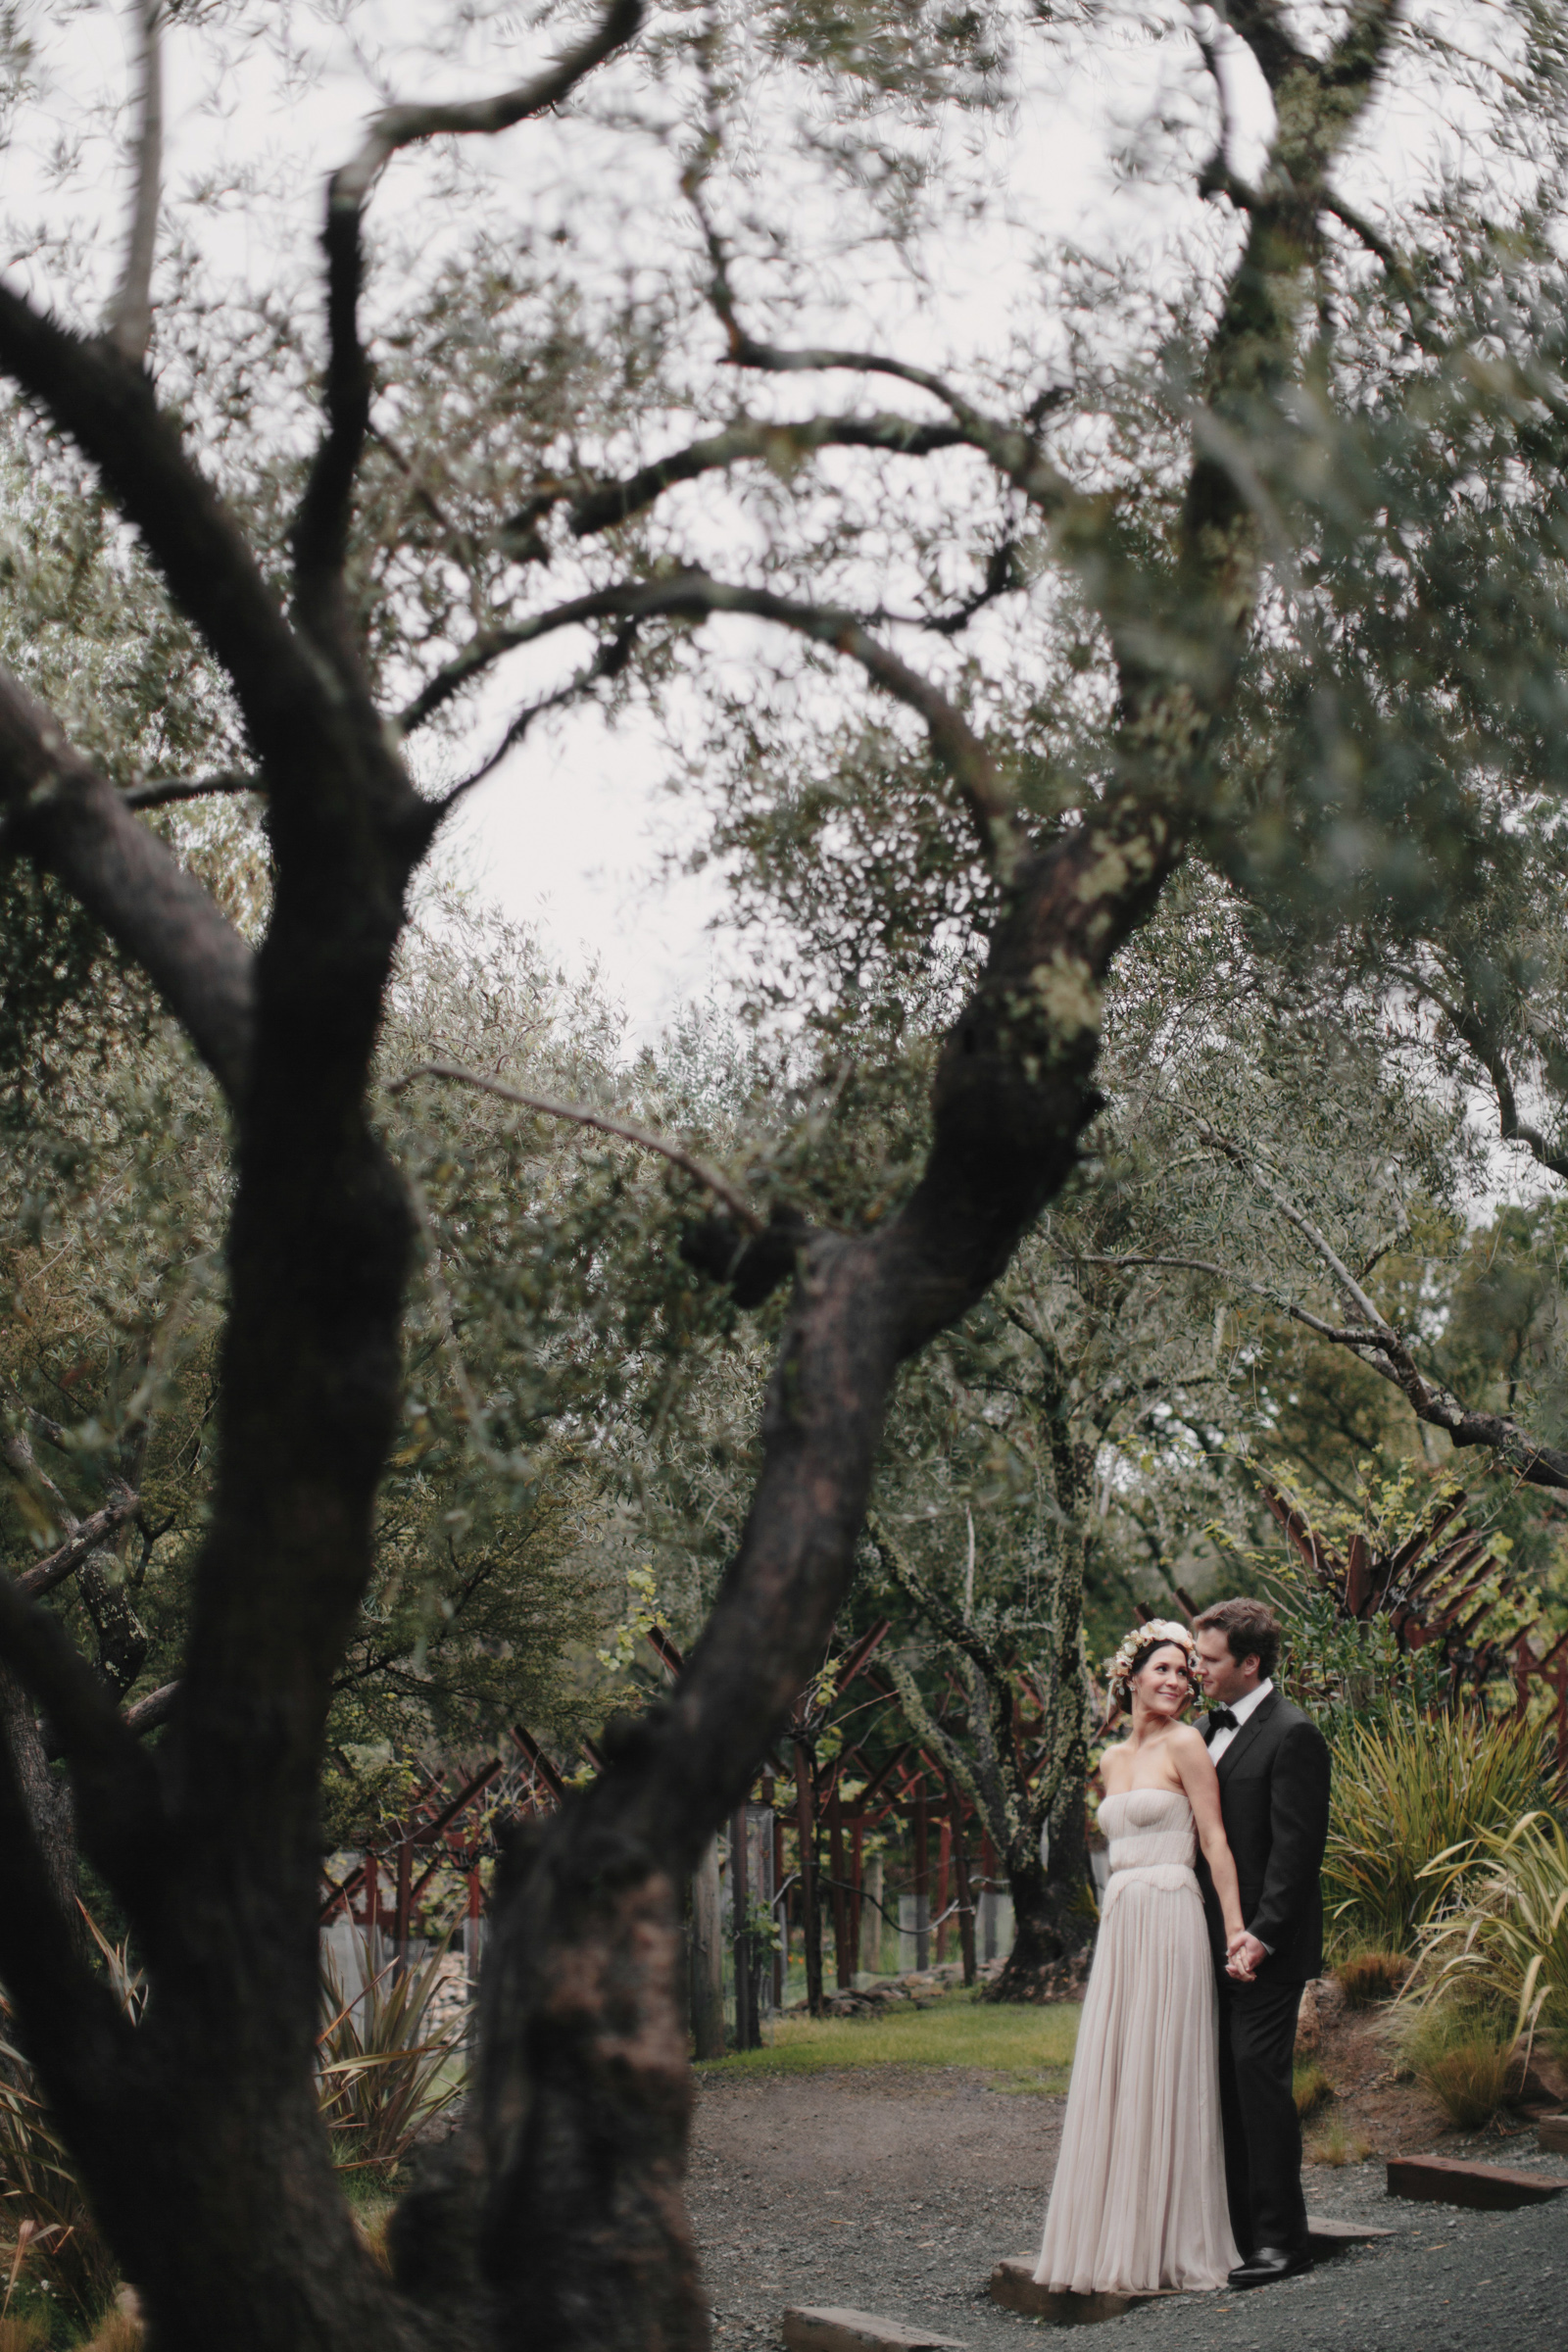 San Francisco - Napa Valley Wedding Photographer - For the Love of It-005.jpg